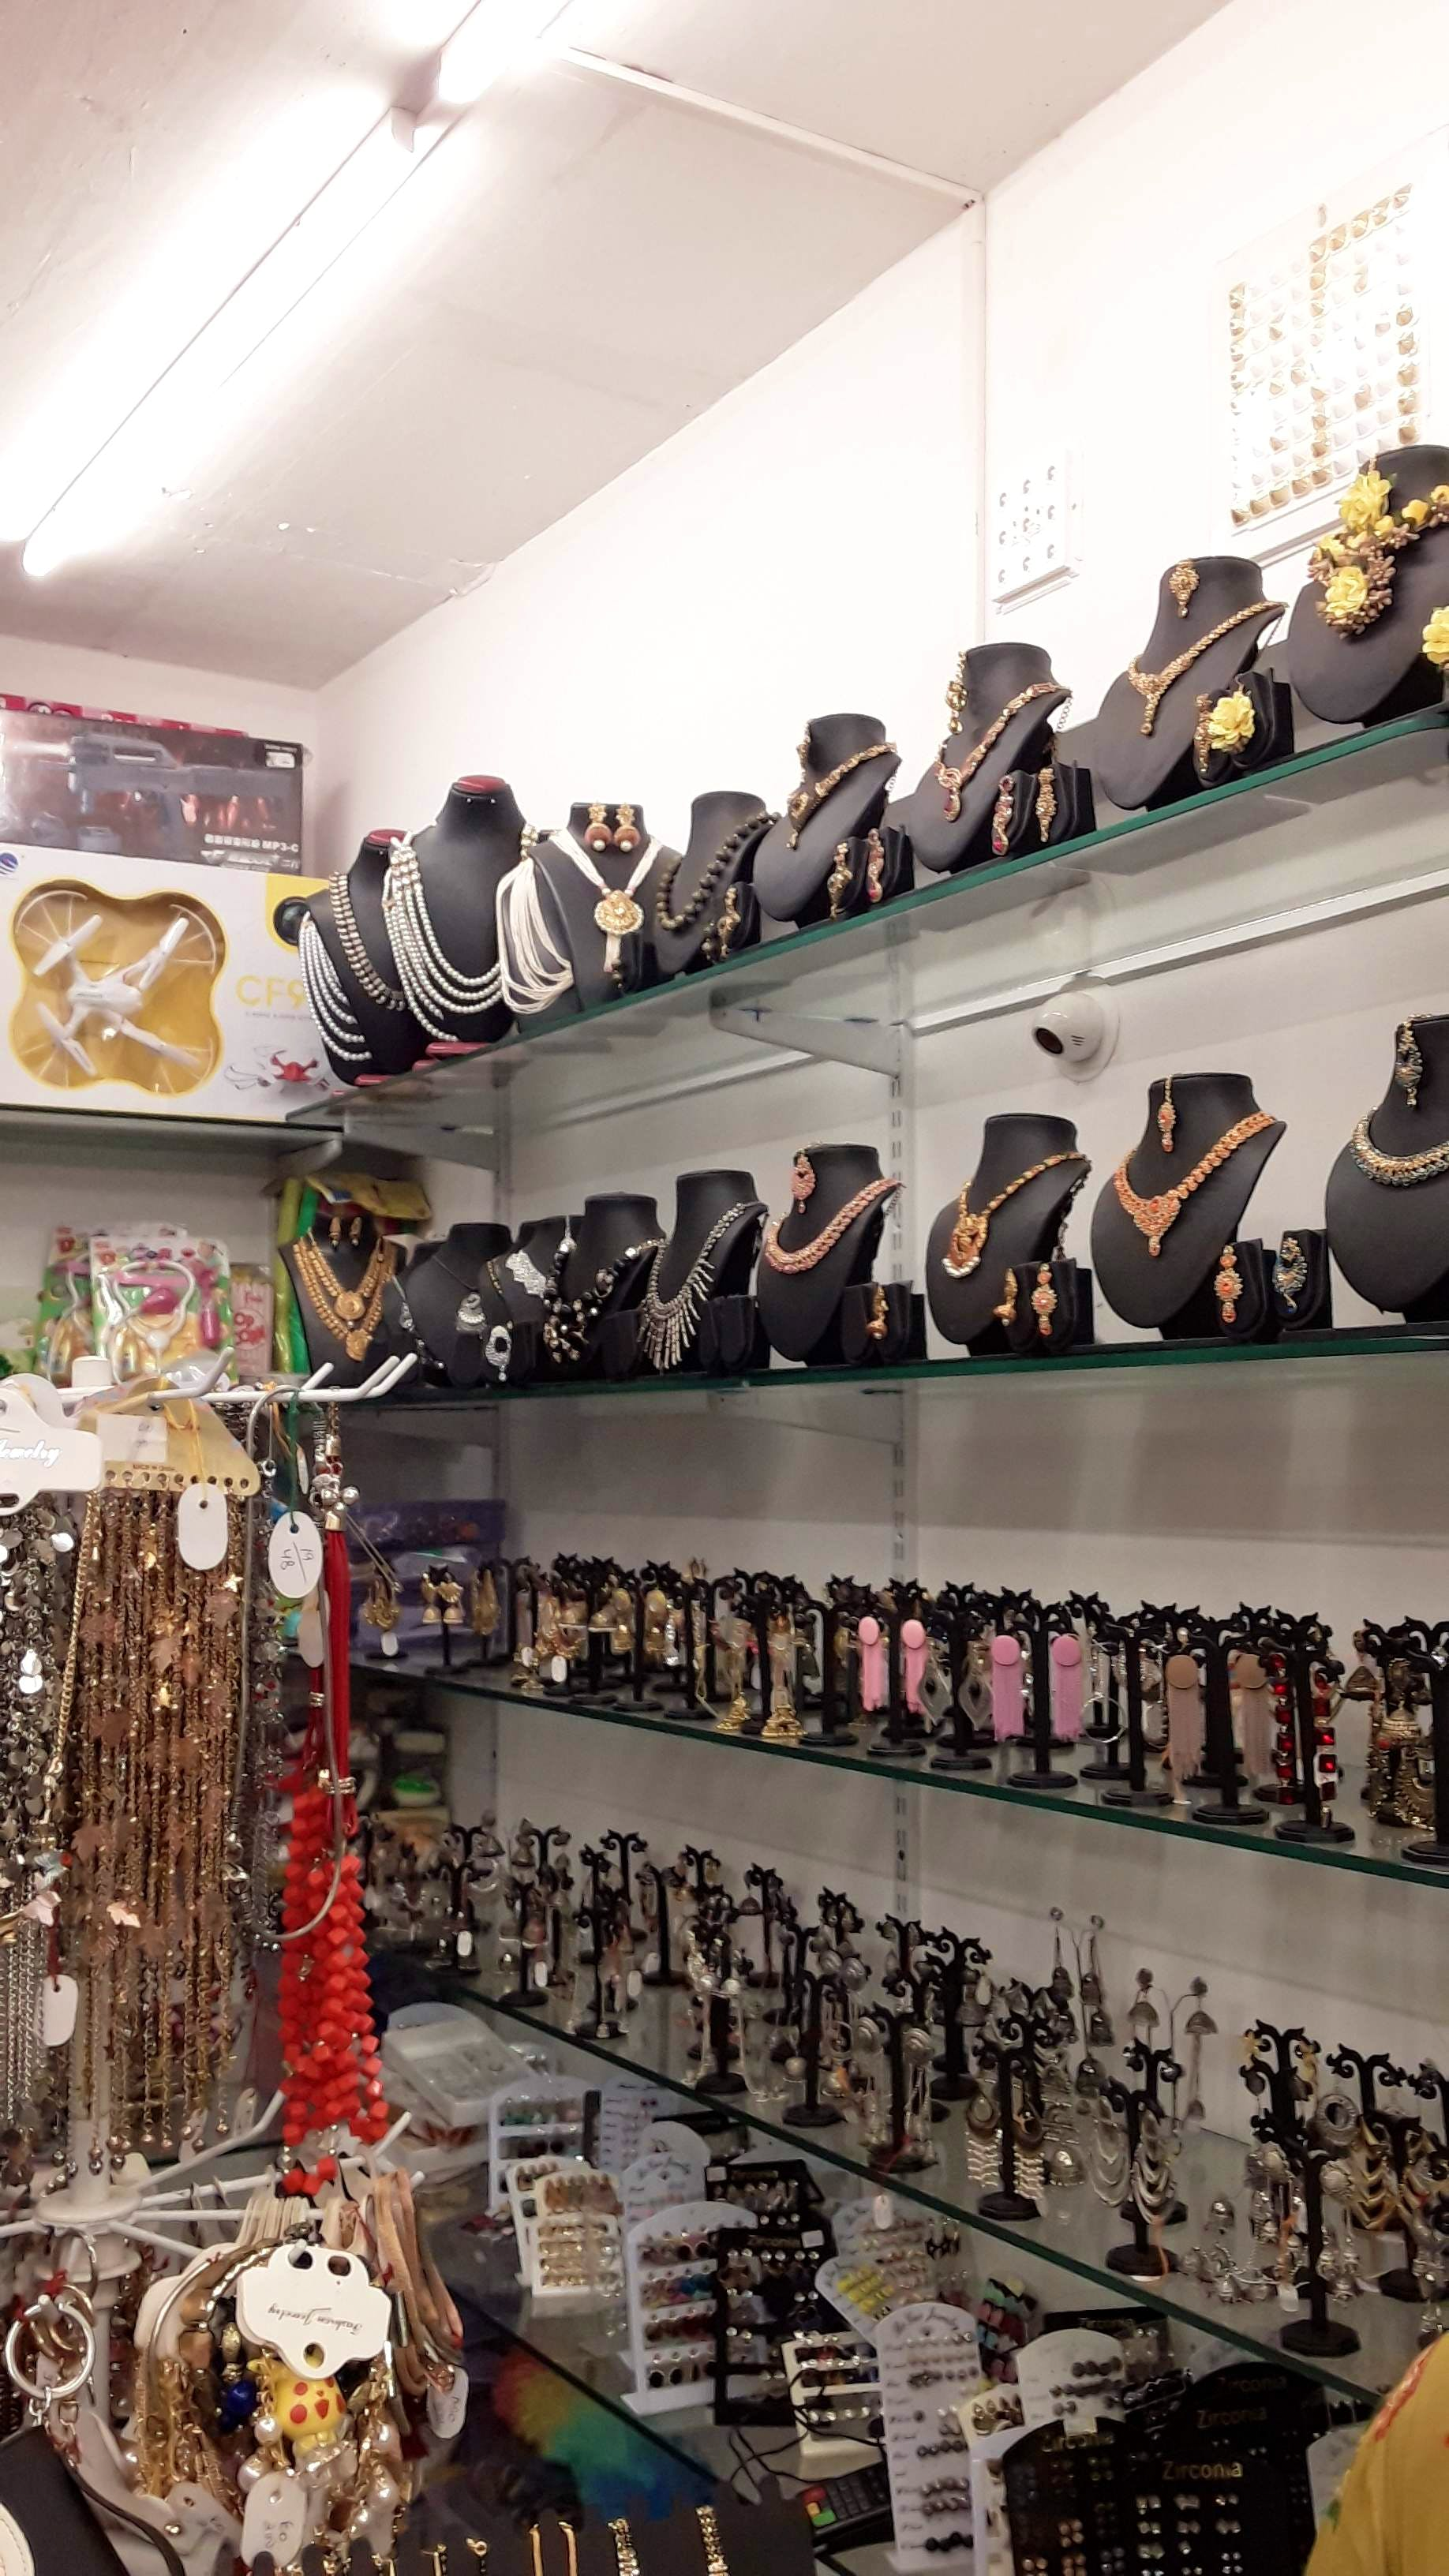 Footwear,Shoe store,Boutique,Shoe,Outlet store,Room,Collection,Building,Closet,Shelf